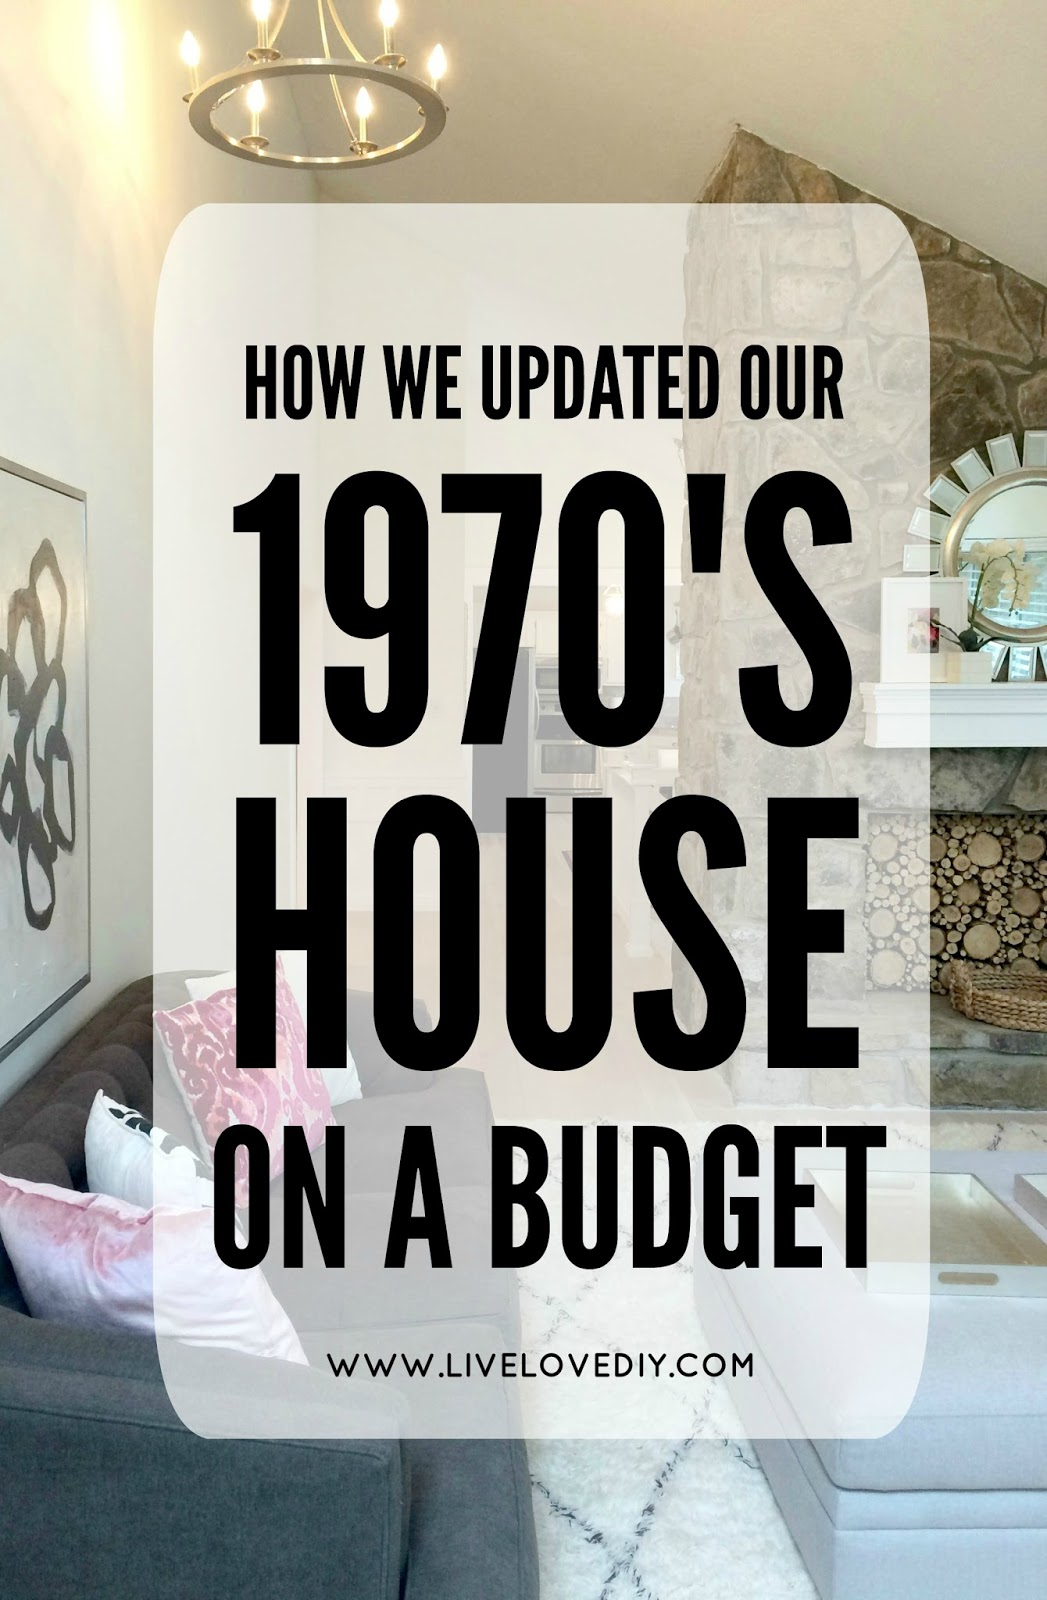 How We Updated Our 1970u0027s House On A Budget (and The Living Room REVEAL!)